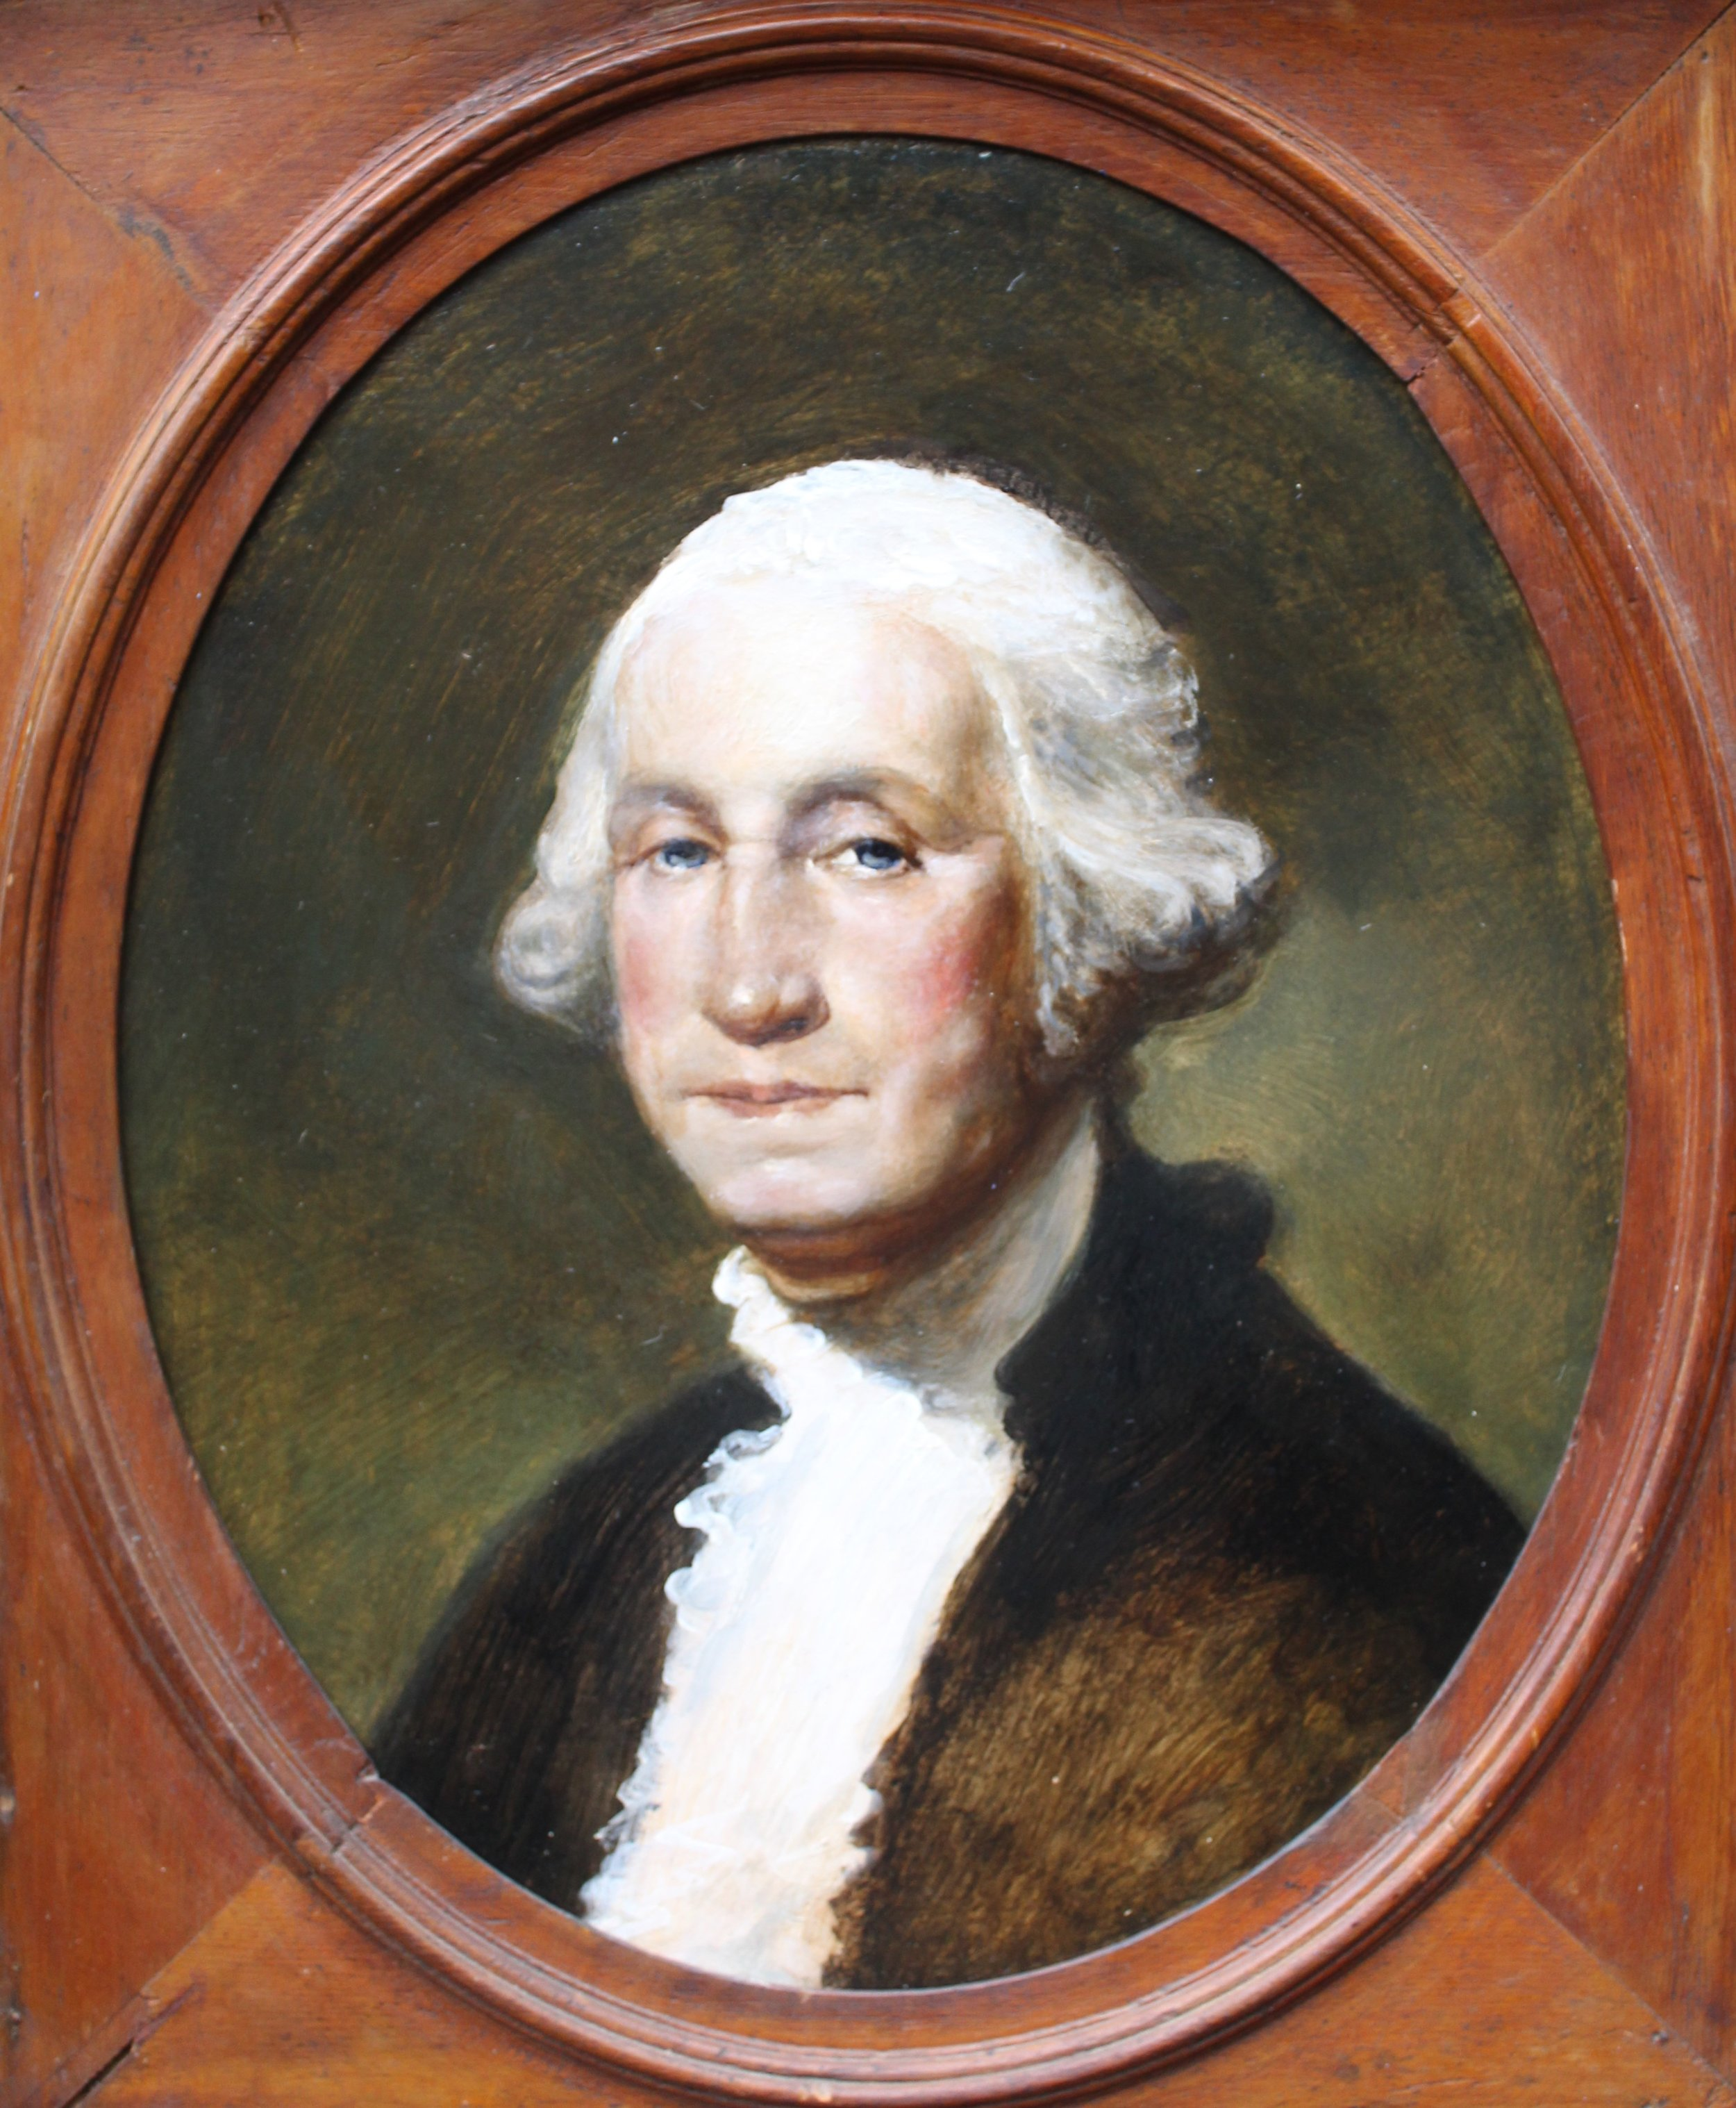 PETER ARGUIMBAU    Our Commander in Chief    A copy of George Washington's official presidential portrait by Gilbert Stuart. Stuart's portrait of the president has been portrayed on the once dollar bill since 1869. The presidential painter began his art career in Newport, RI. An immersive experience can be had at the Gilbert Stuart Birthplace & Museum in Saunderstown, RI.  20 x 16 inches